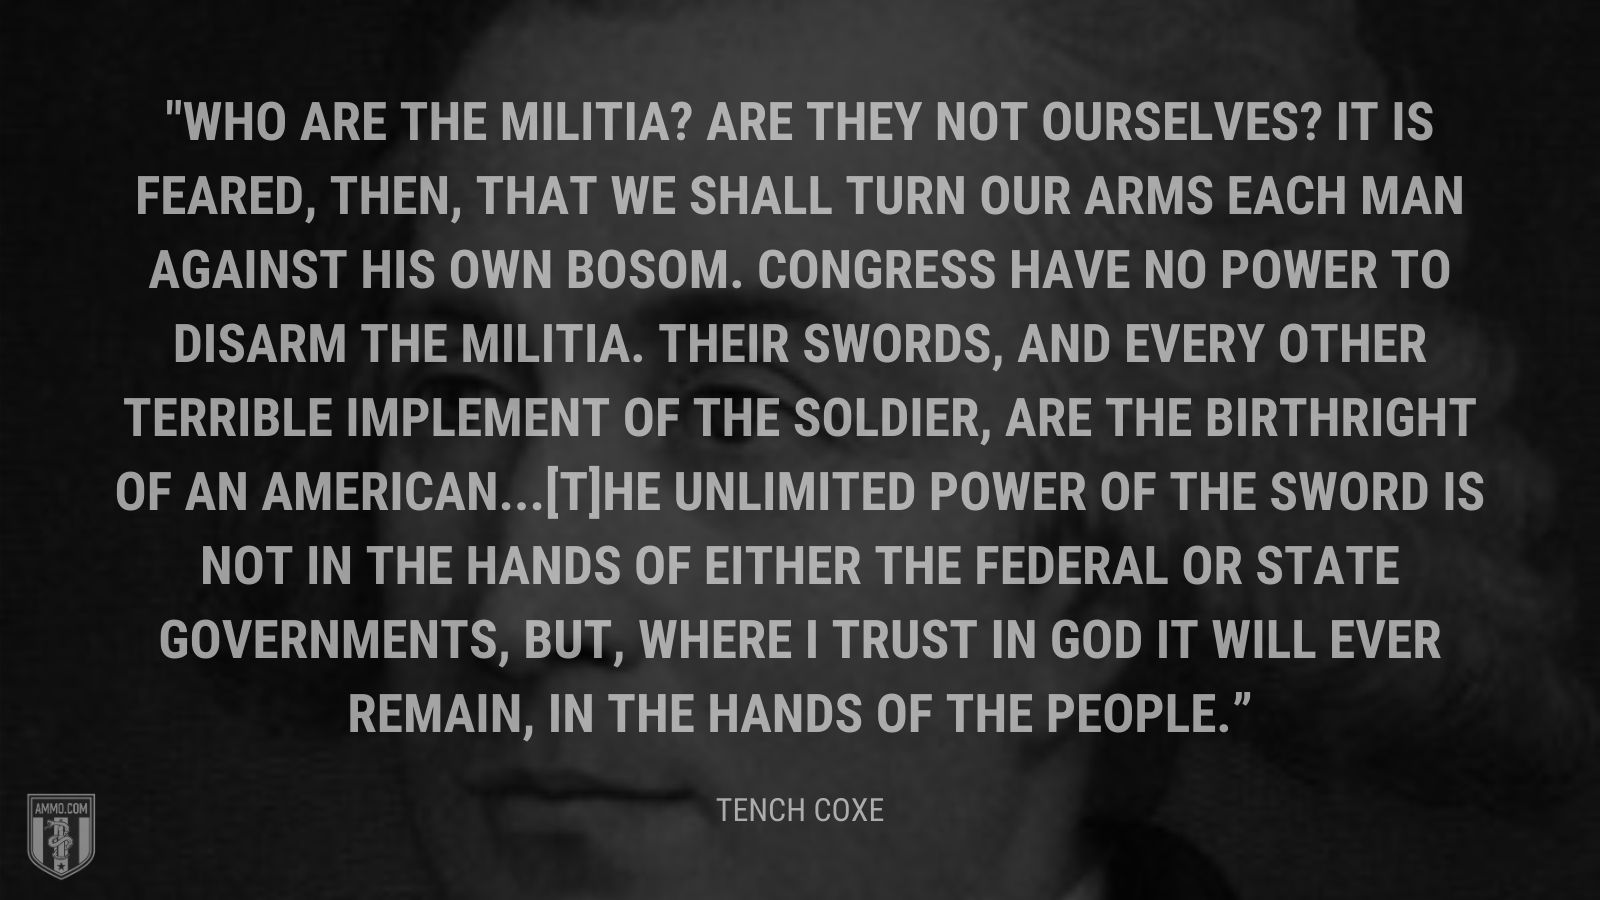 """Who are the militia? Are they not ourselves? It is feared, then, that we shall turn our arms each man against his own bosom. Congress have no power to disarm the militia. Their swords, and every other terrible implement of the soldier, are the birthright of an American...[T]he unlimited power of the sword is not in the hands of either the federal or state governments, but, where I trust in God it will ever remain, in the hands of the people."" - Tench Coxe"